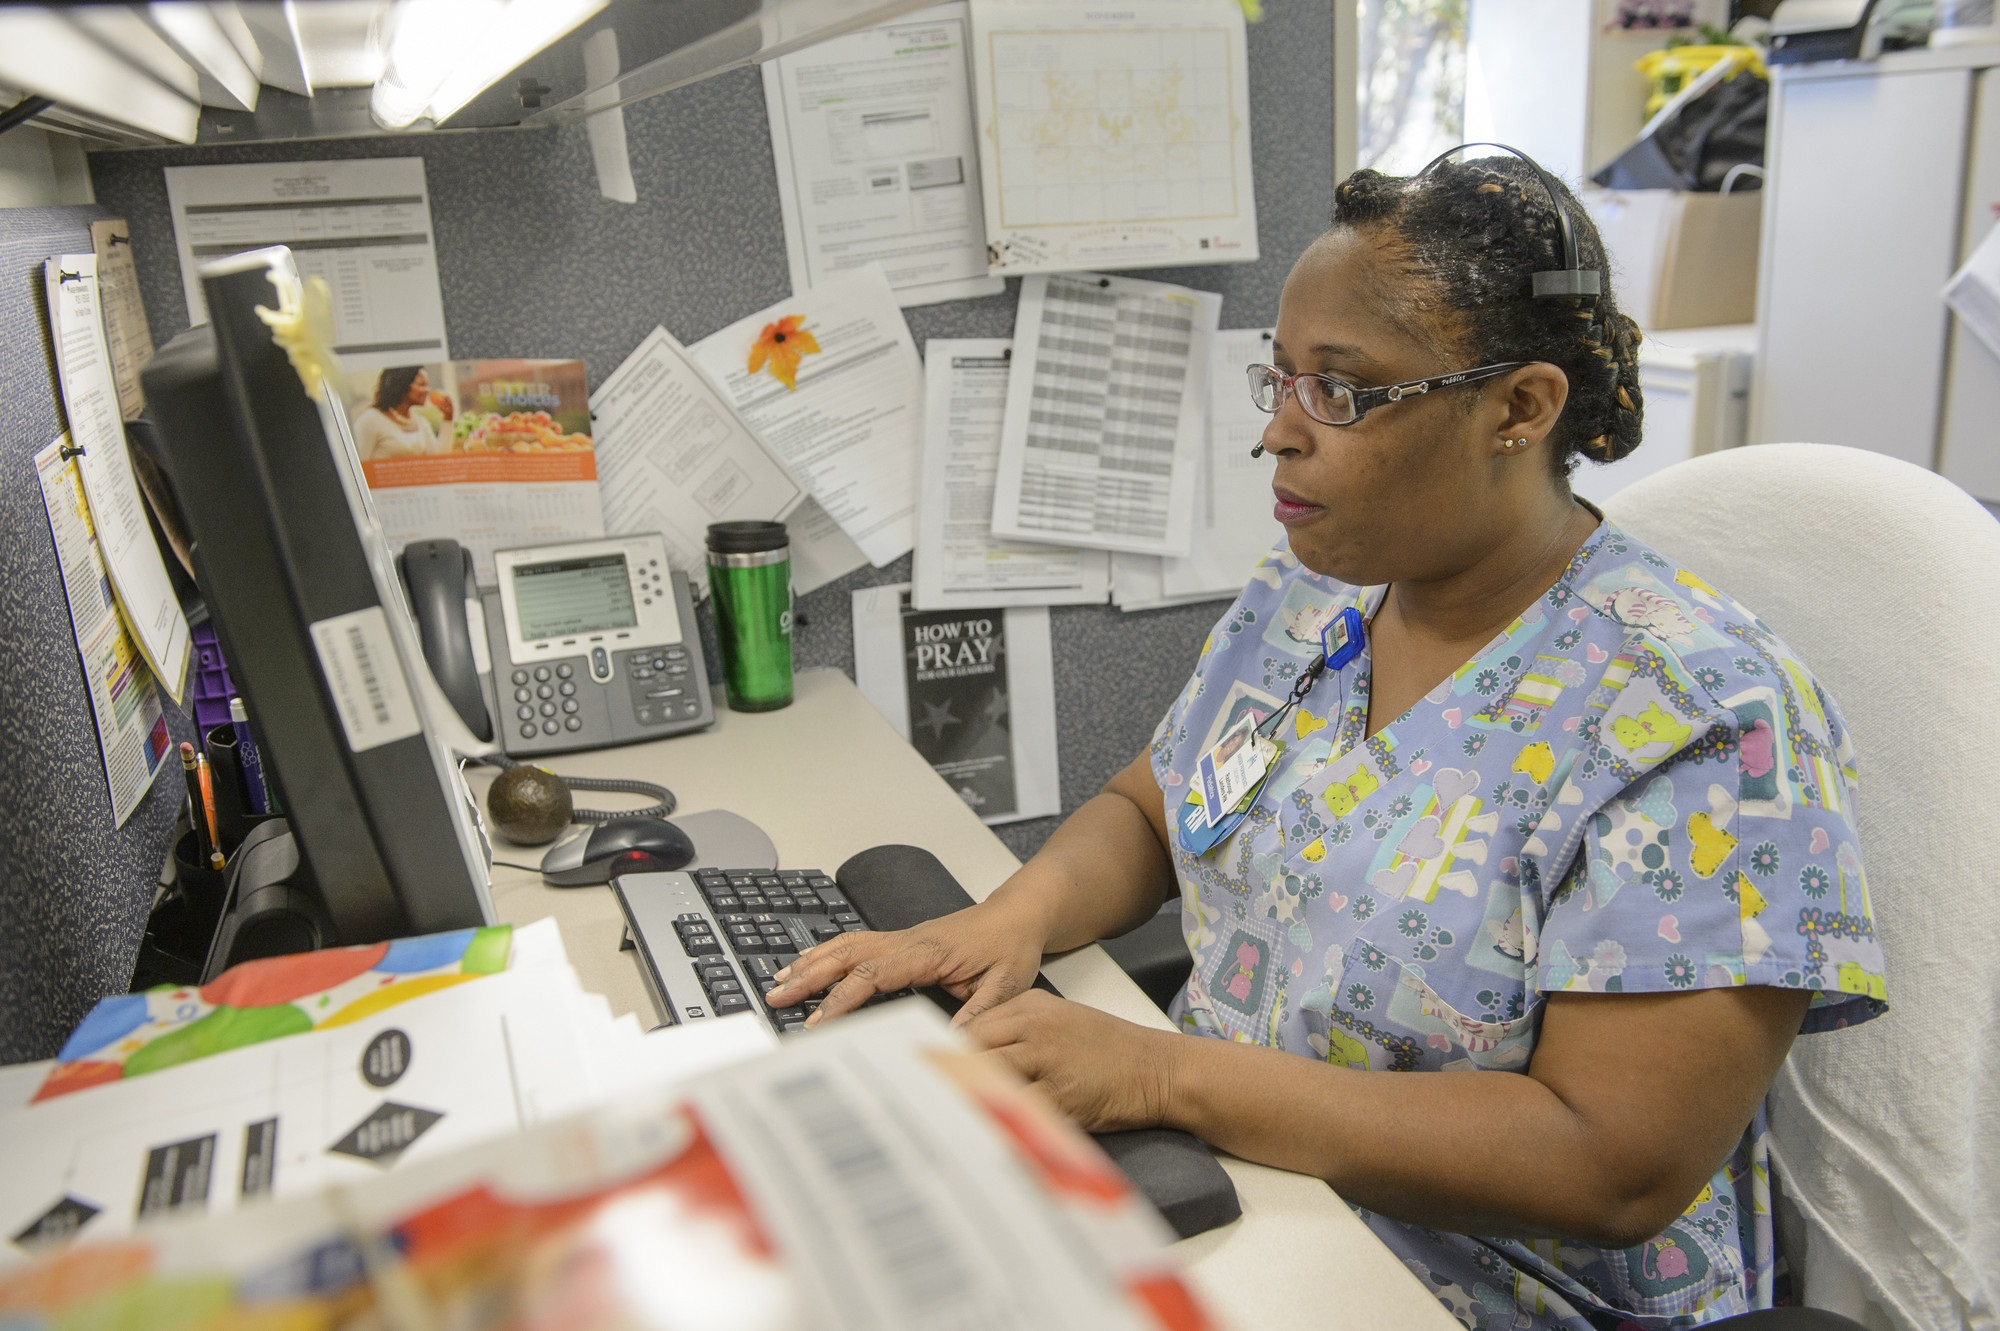 Nurse typing and looking at a computer screen